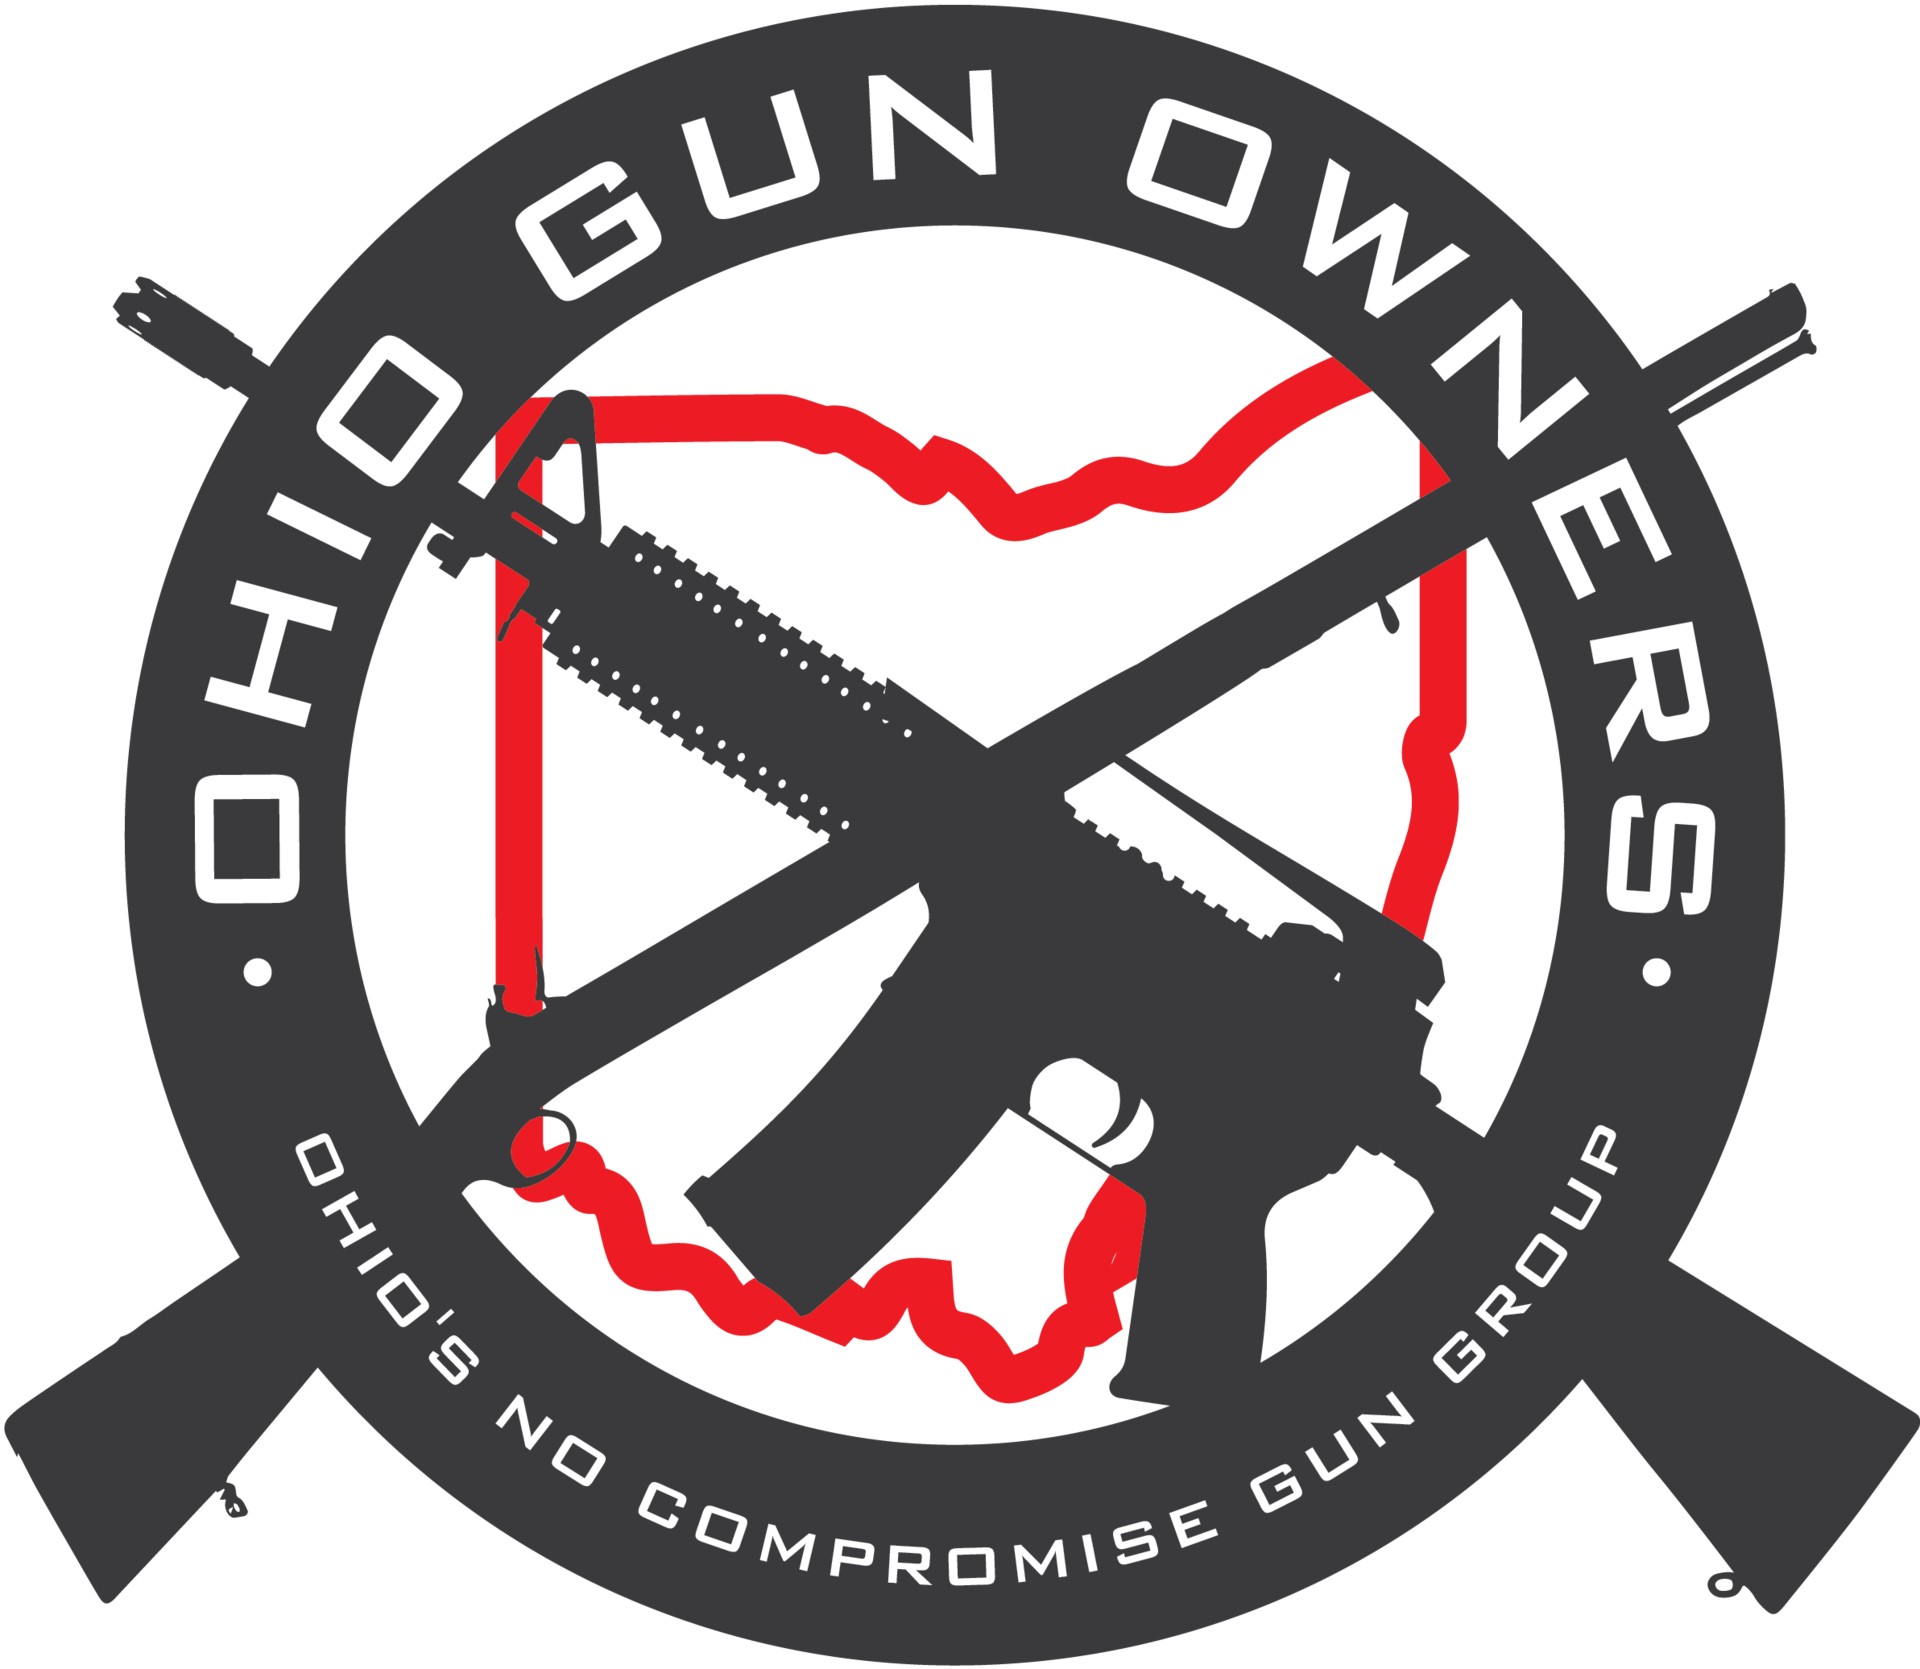 Ohio gun rights final trimmed